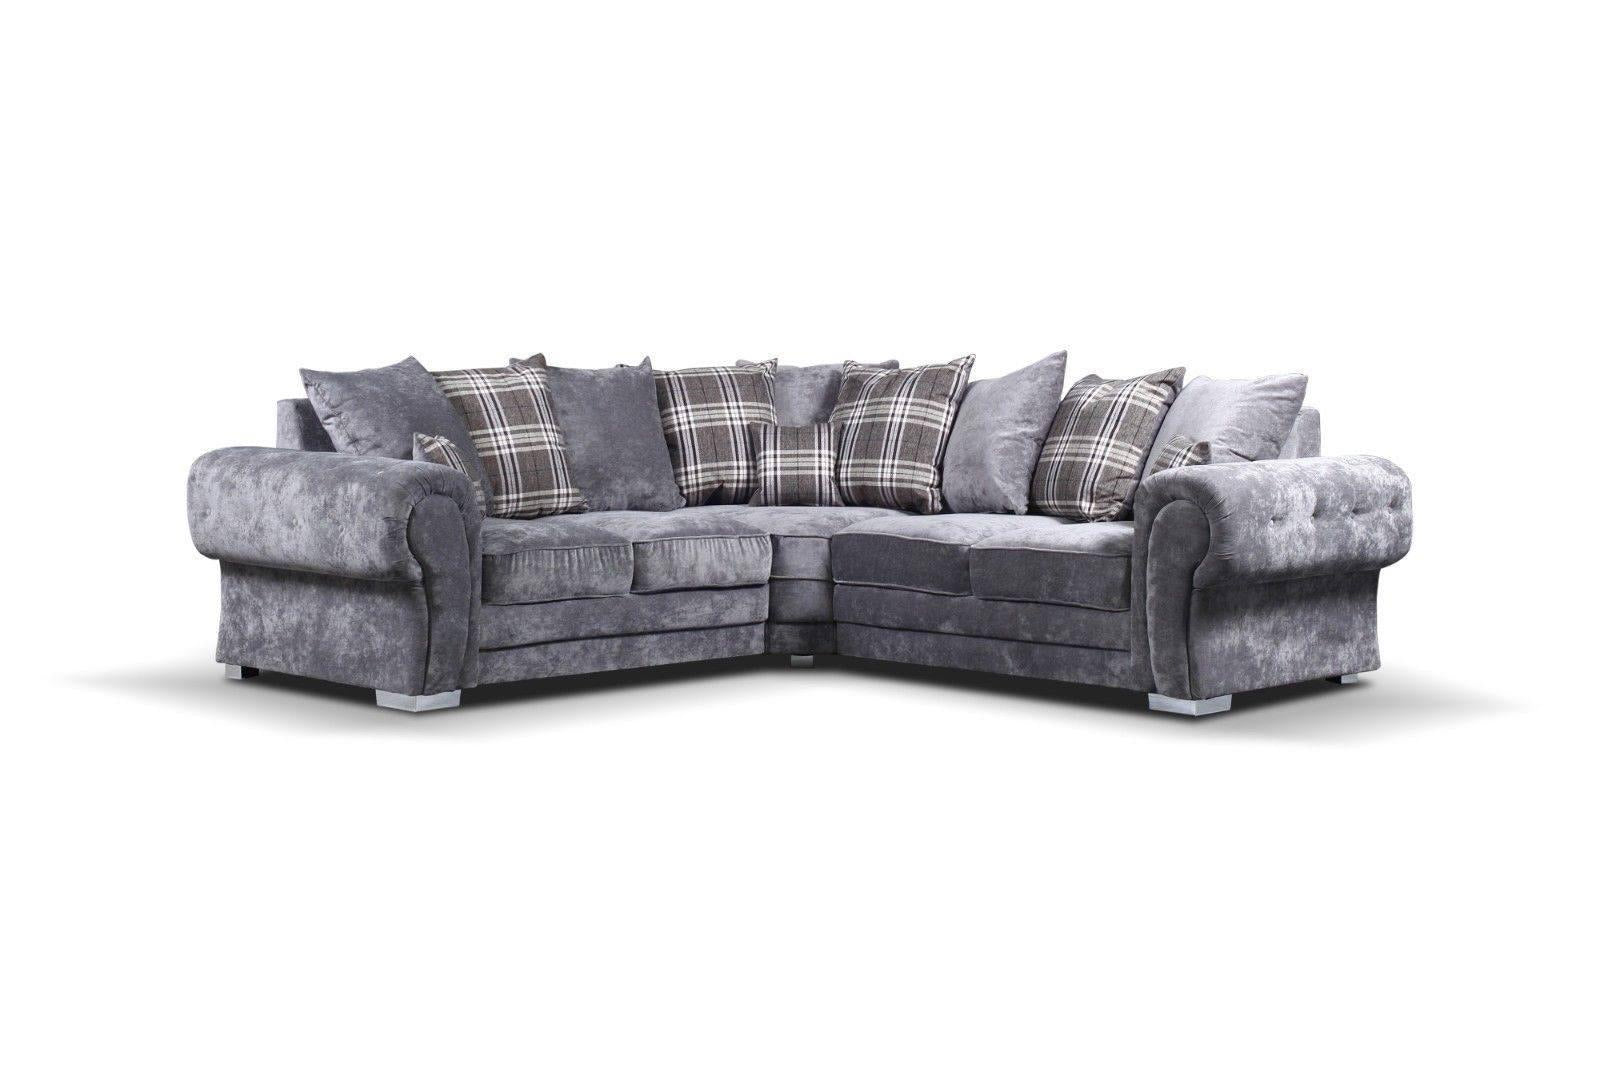 Verona Fabric Chesterfield Corner Sofa In Grey With Scatted cushions